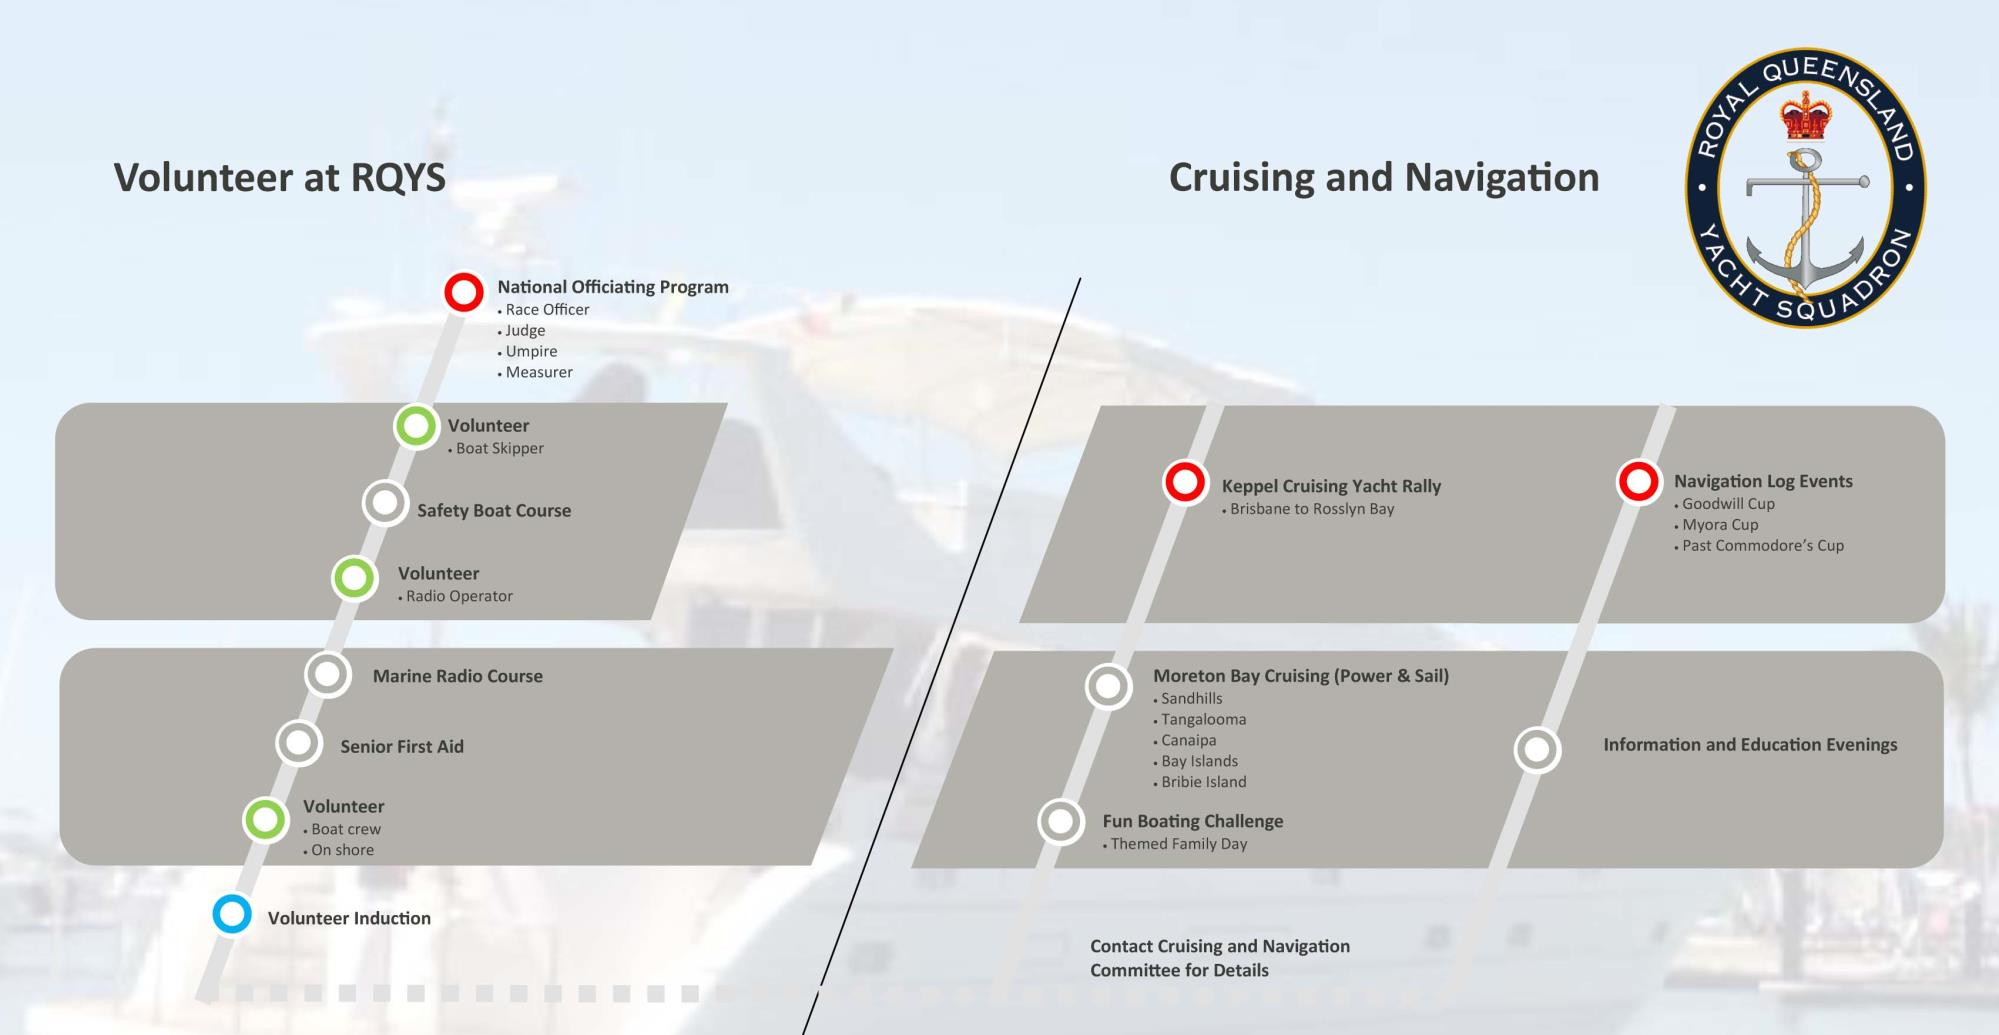 PATHWAYS - Cruising and Navigation